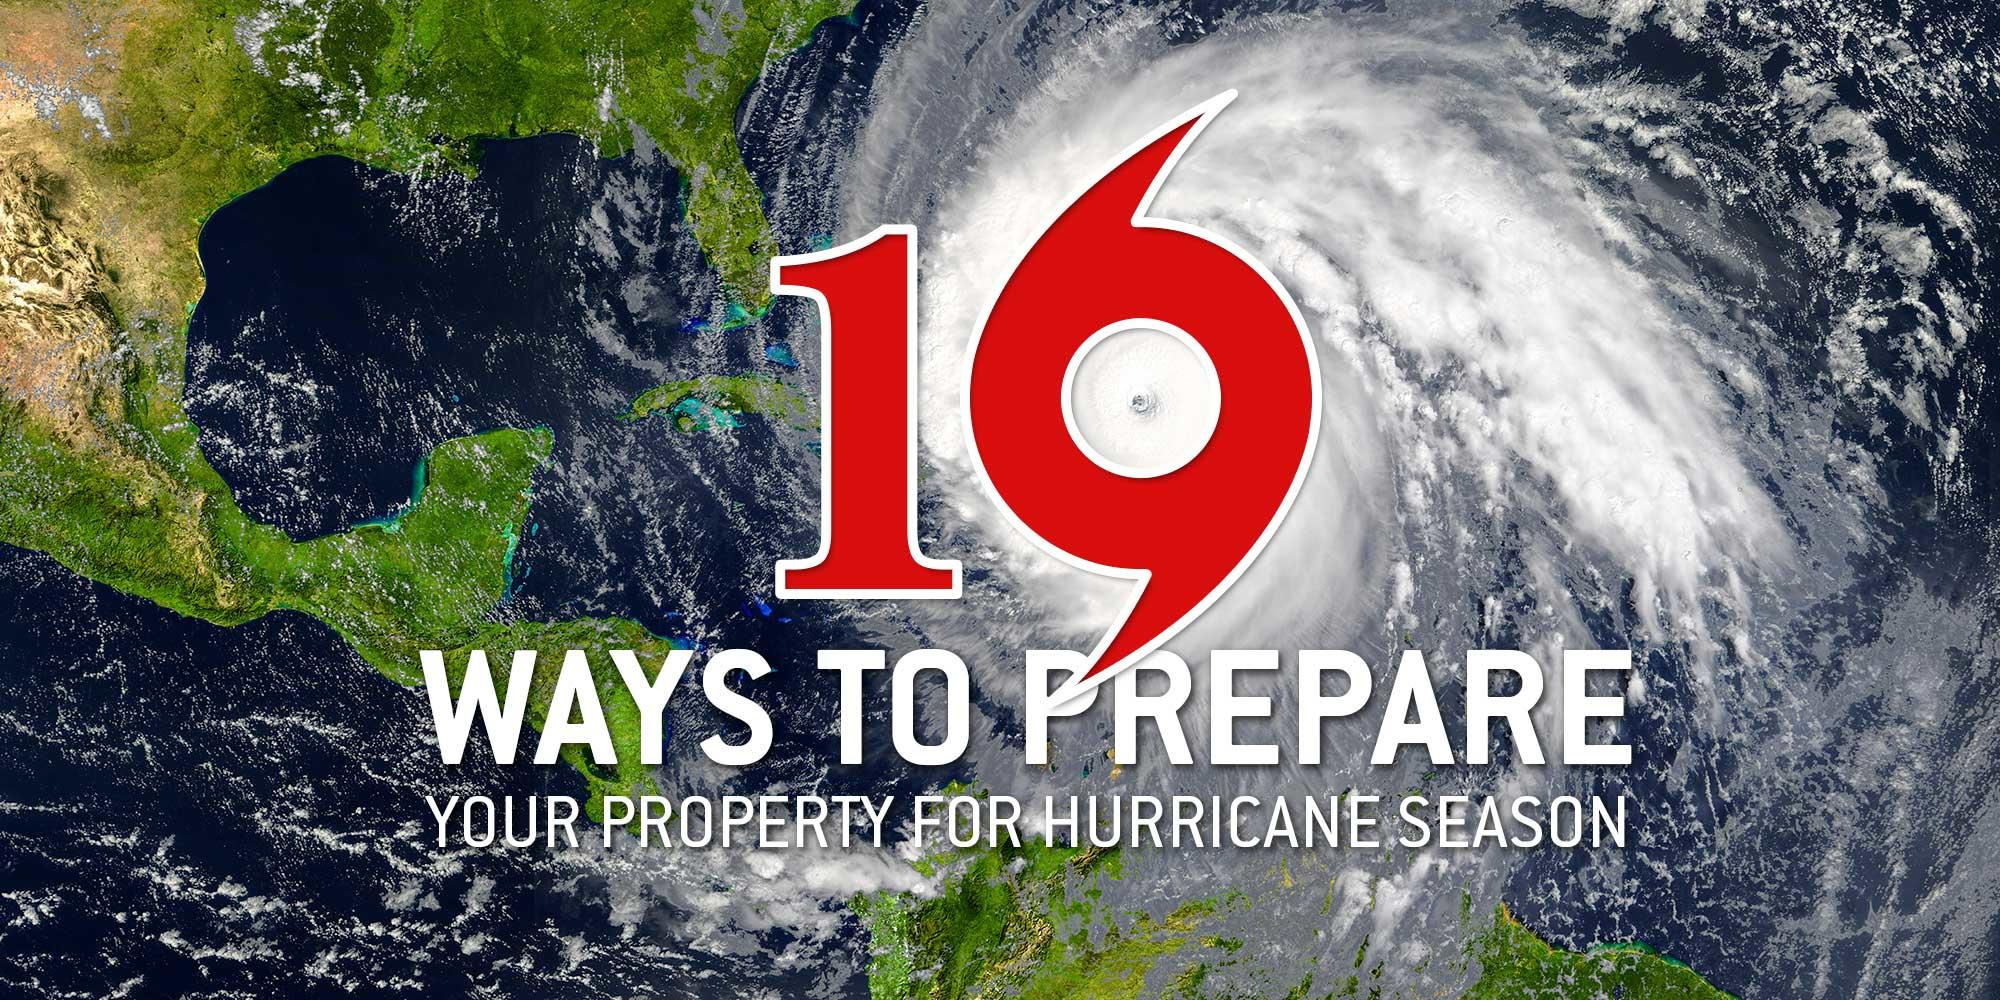 How to Prepare Your Property for Hurricane Season - article image